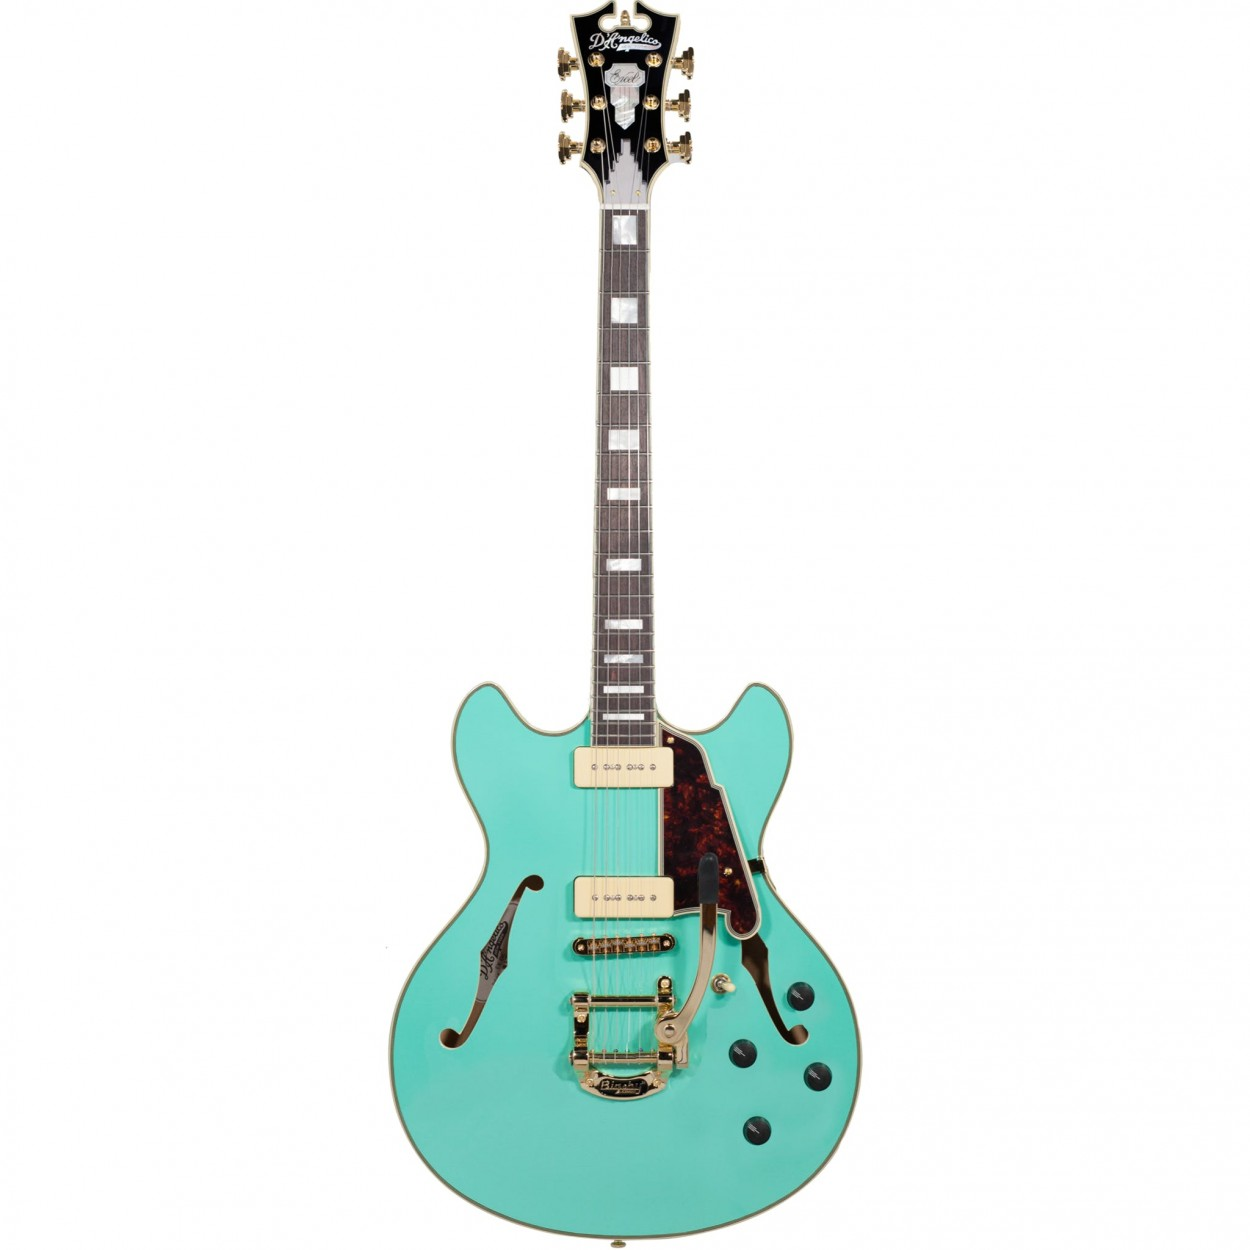 D'Angelico Excel DC Shoreline Bigsby in Surf Green